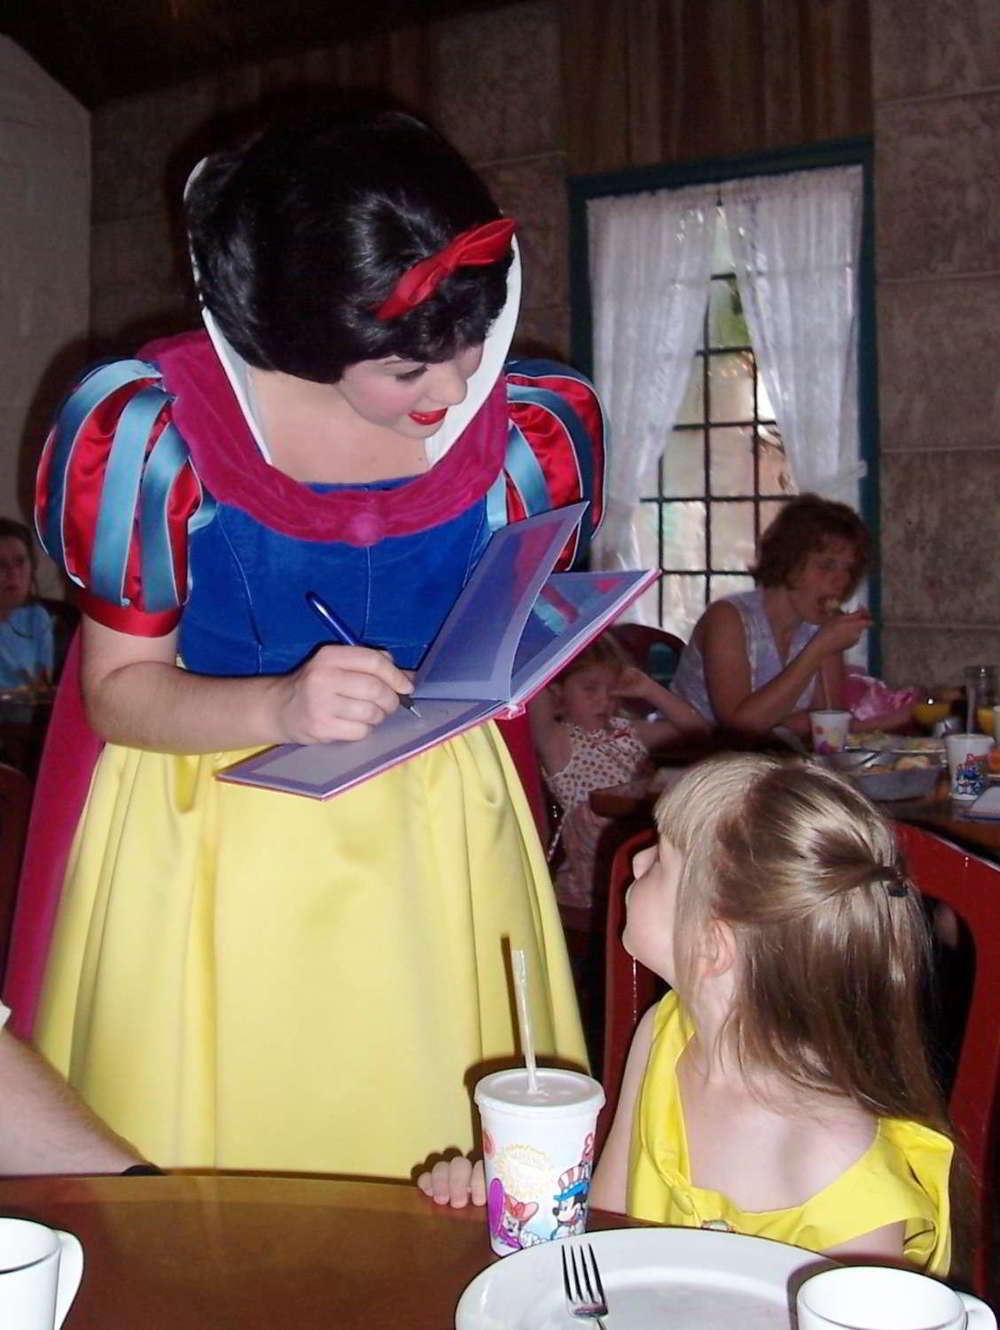 A List of places to dine with Disney Princesses at Disney World.  See: http://www.buildabettermousetrip.com/princess-meals-at-disney-world Photo by Monica Bryant.